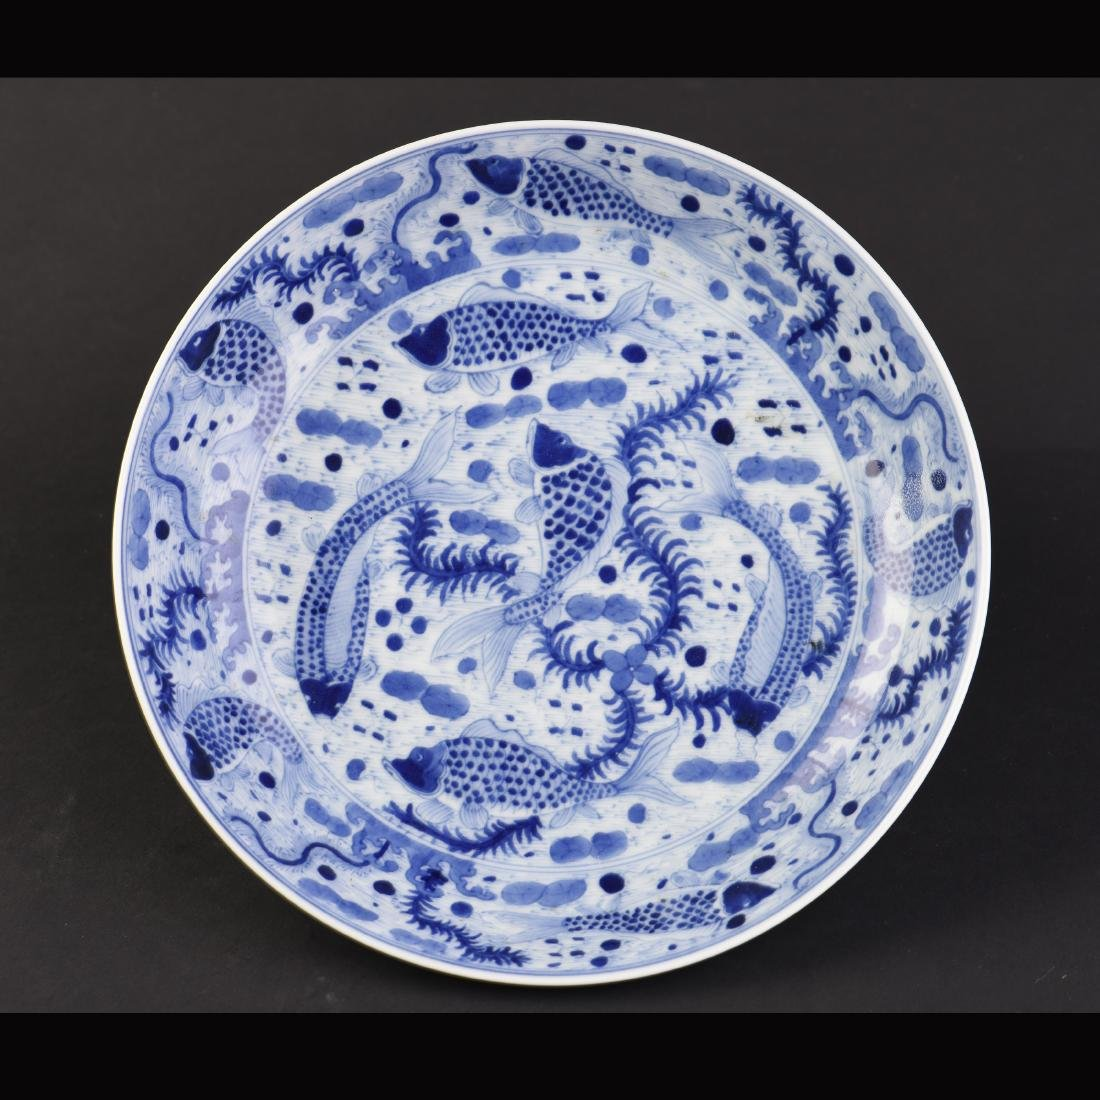 A BLUE AND WHITE 'FISH' PORCELAIN DISH